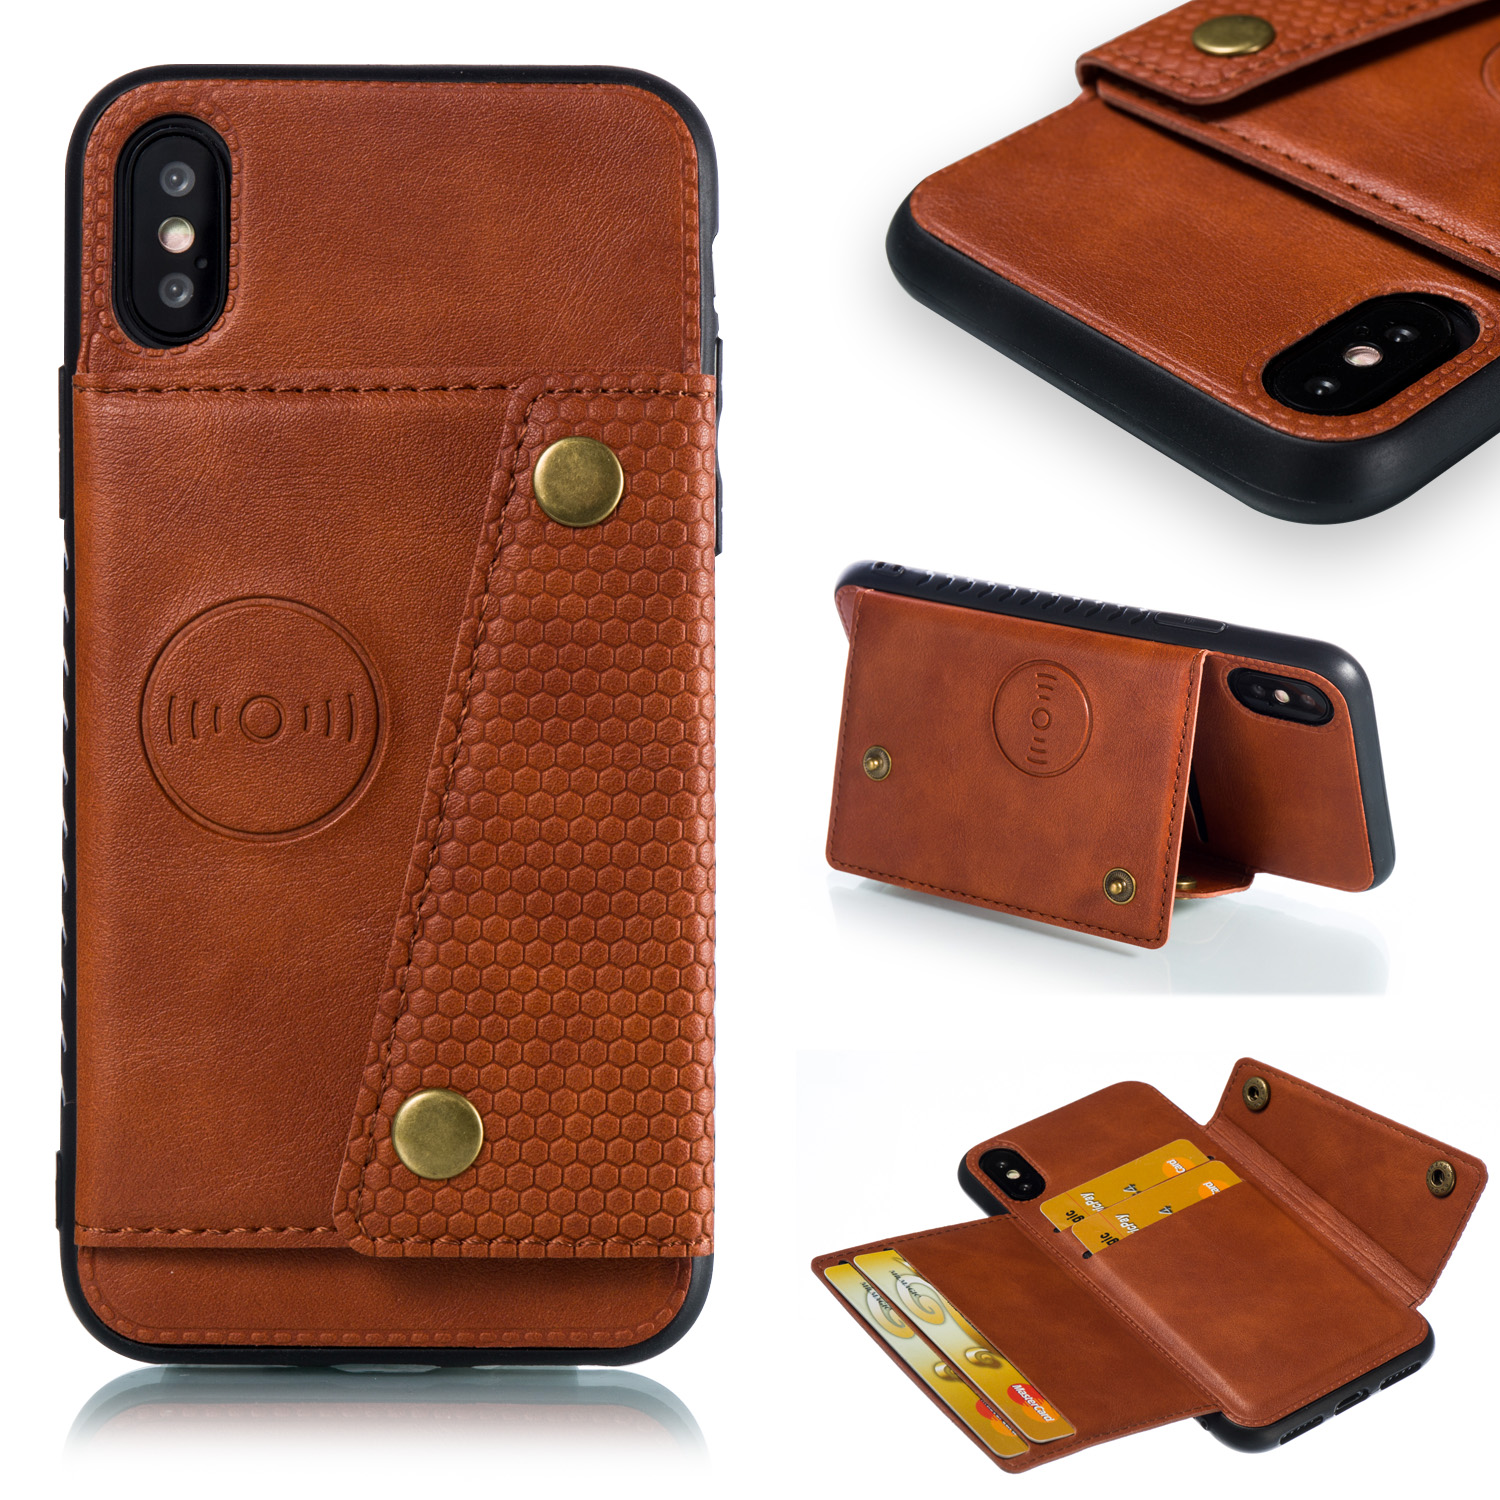 Multi Card Holders Wallet Case For iPhone 11 Pro Max Xs Max XR X Magnet Buckle Innrech Market.com